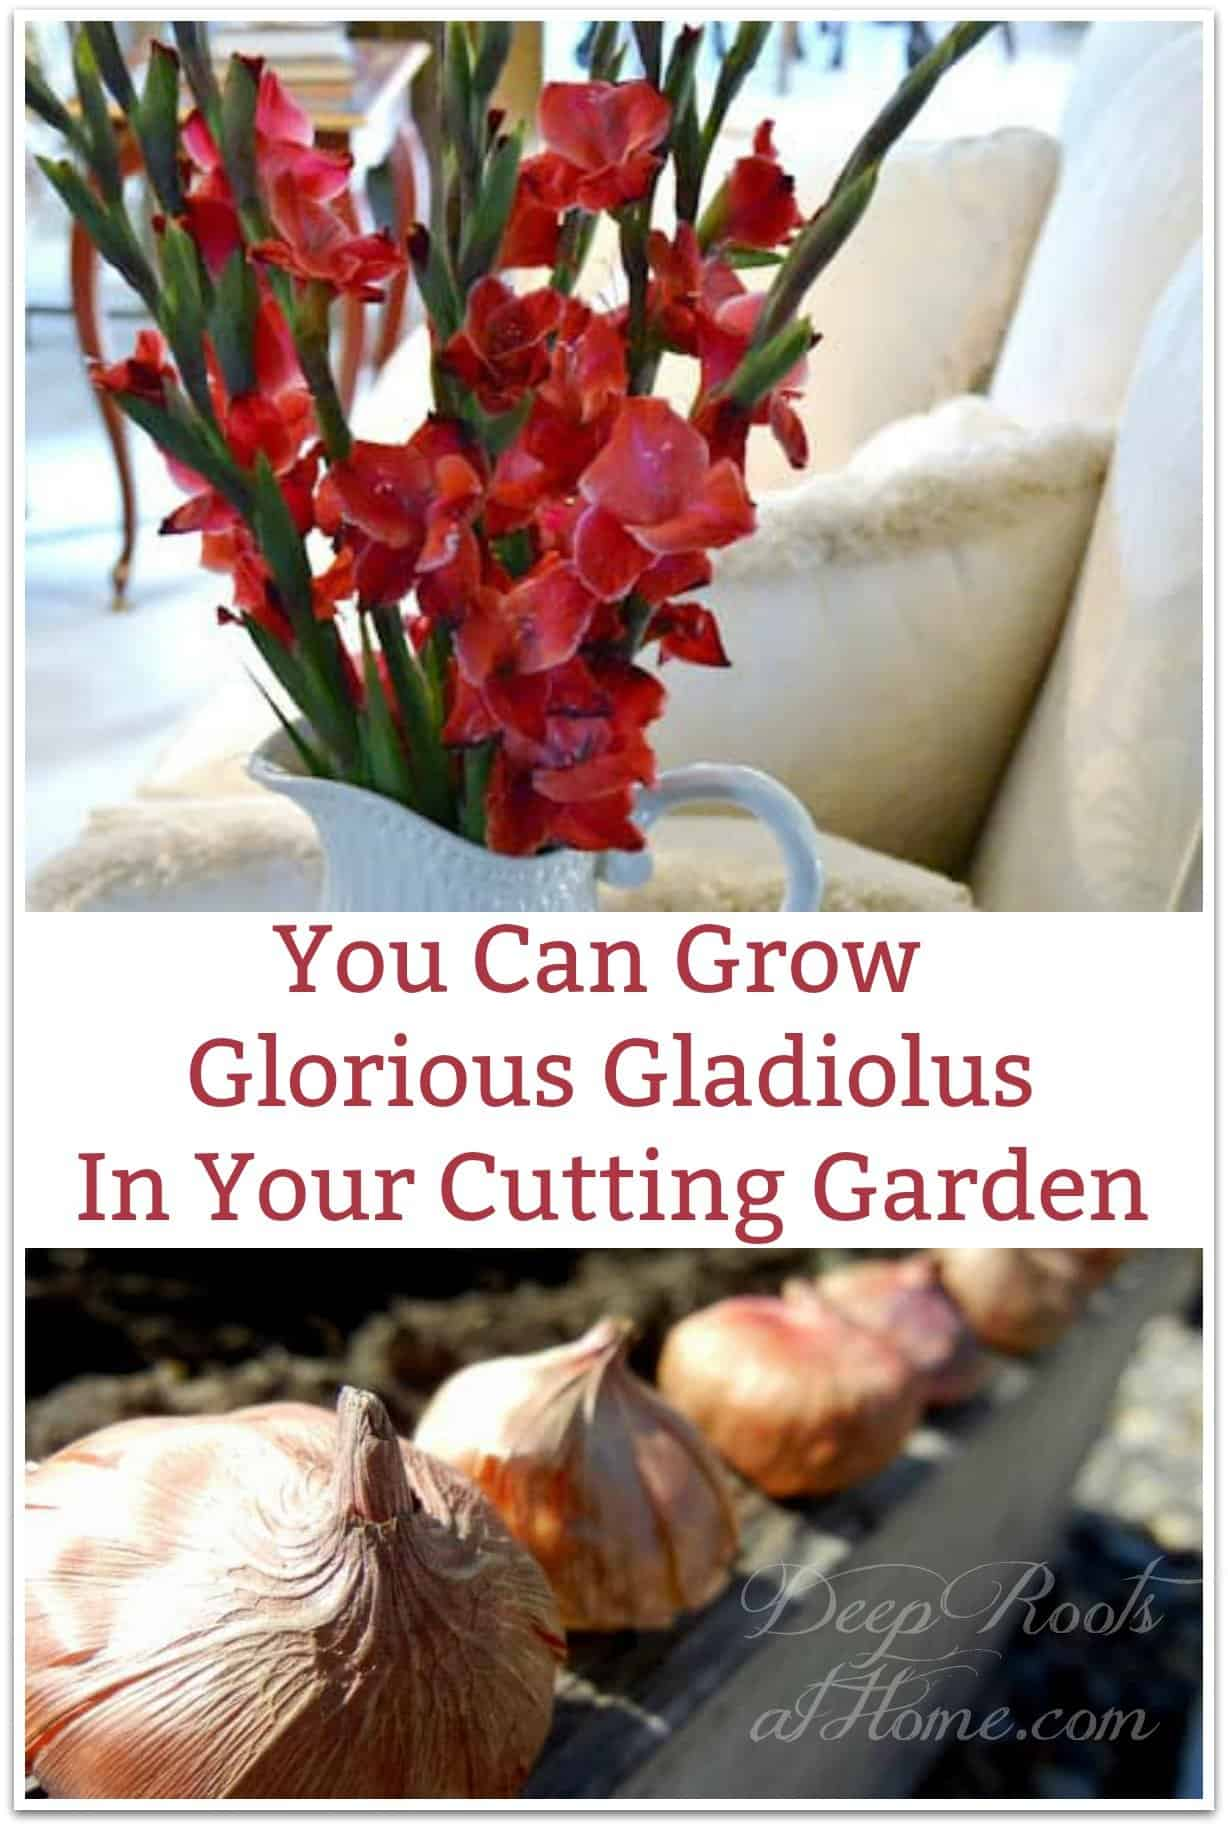 You Can Grow Glorious Gladiolus In Your Cutting Garden. graceful, long-stemmed red gladiolas in a vase